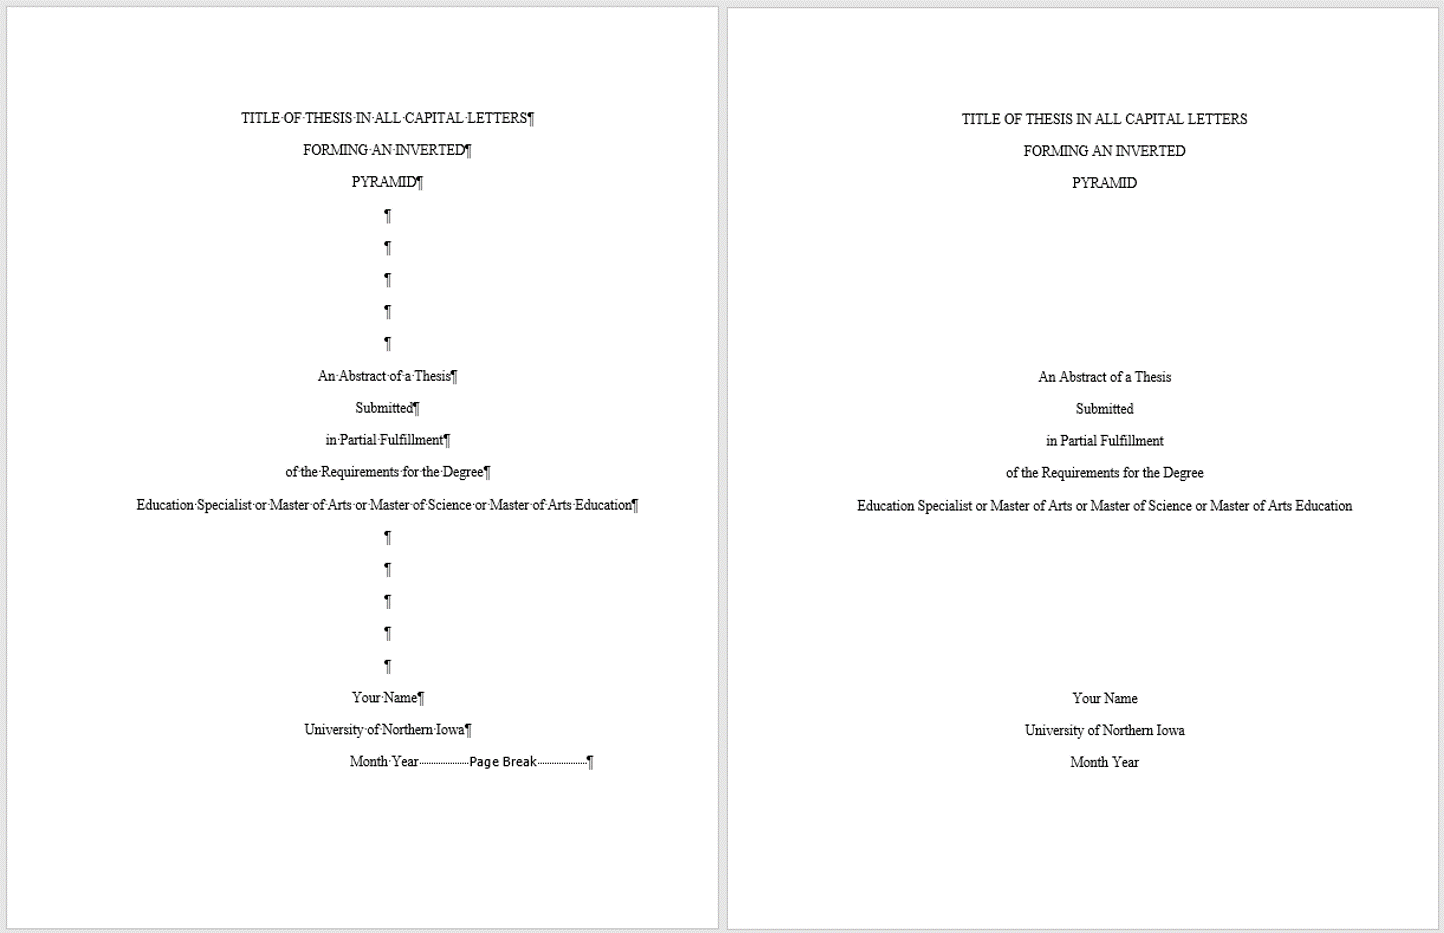 The thesis abstract title page with and without markup to show that the page break should fall at the bottom of the page